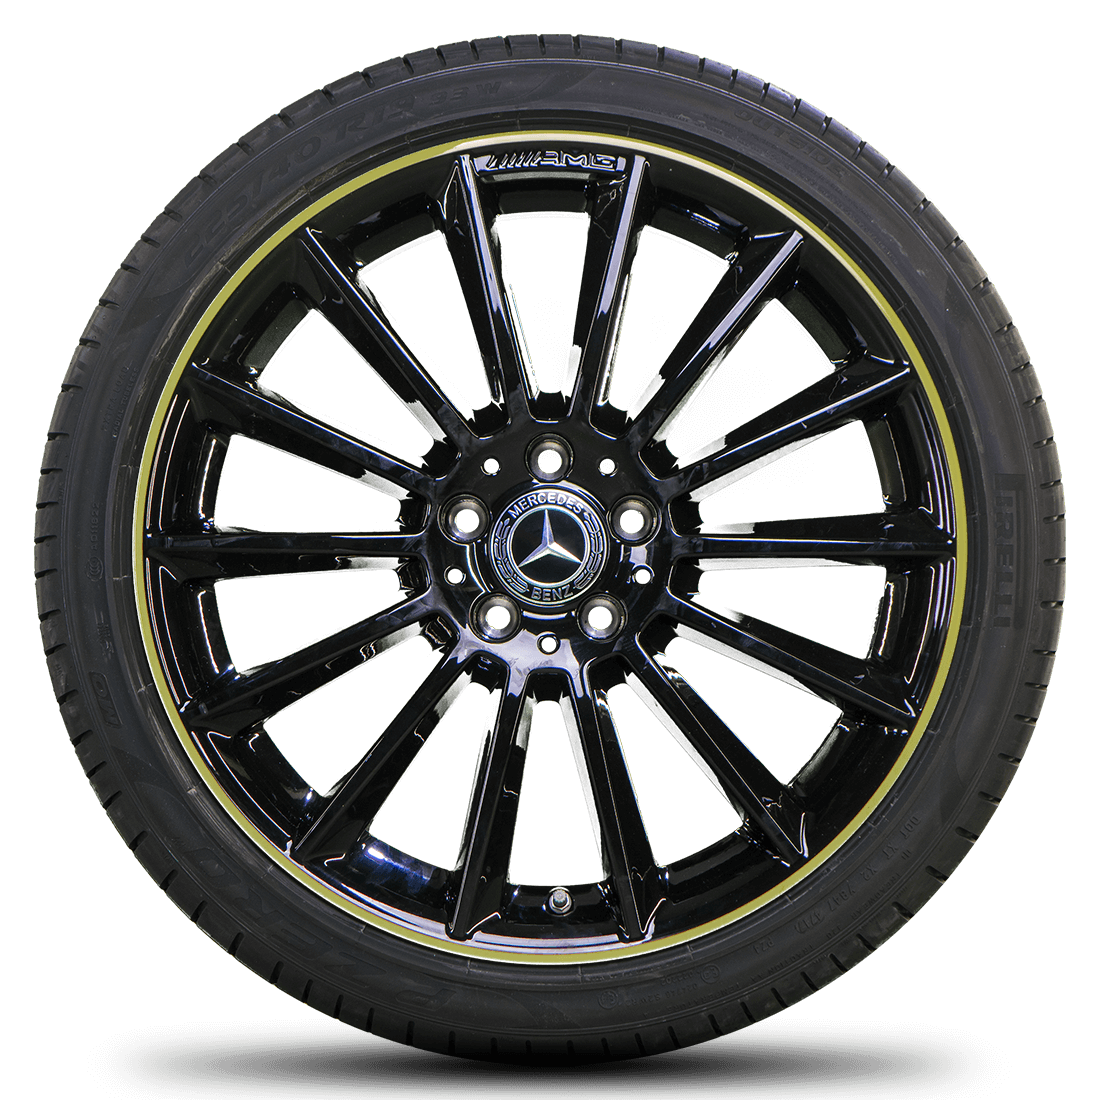 Amg 19 Inch Rims Mercedes A Class W177 Alloy Rims Summer Tires